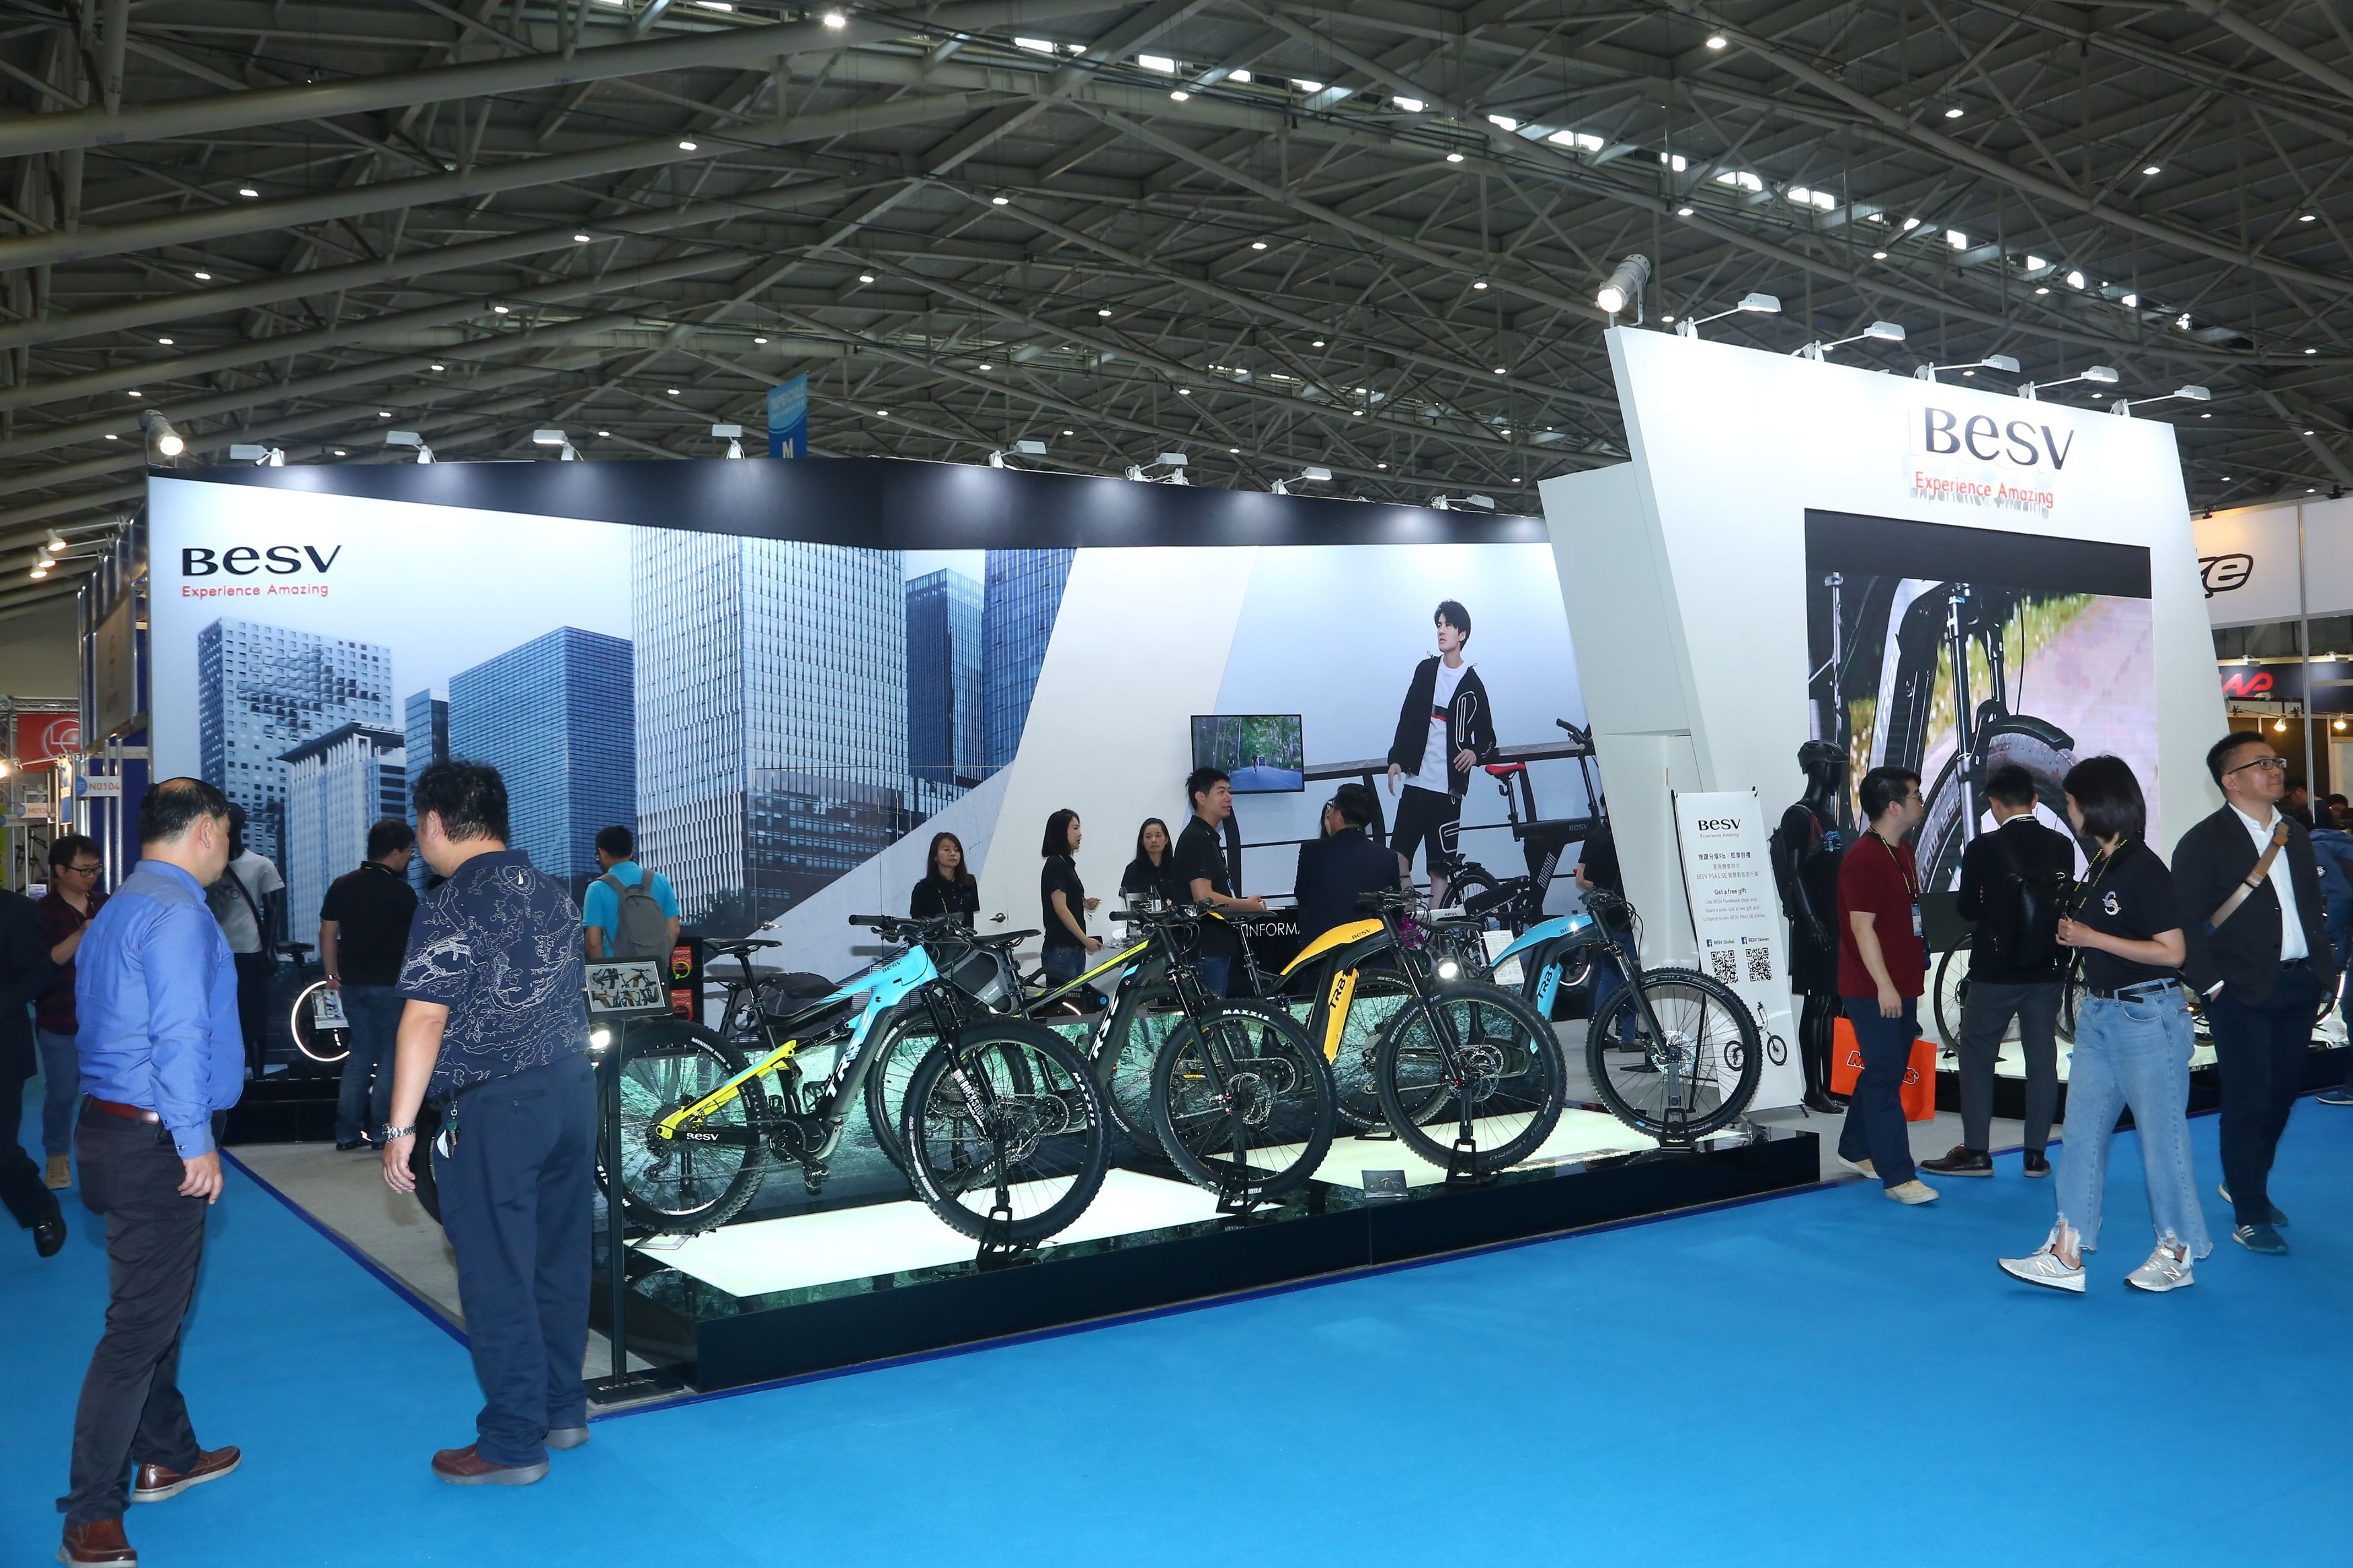 https://storage.googleapis.com/www.taiwantradeshow.com.tw/model/photo/CC/2019/PH00033623-name.jpg